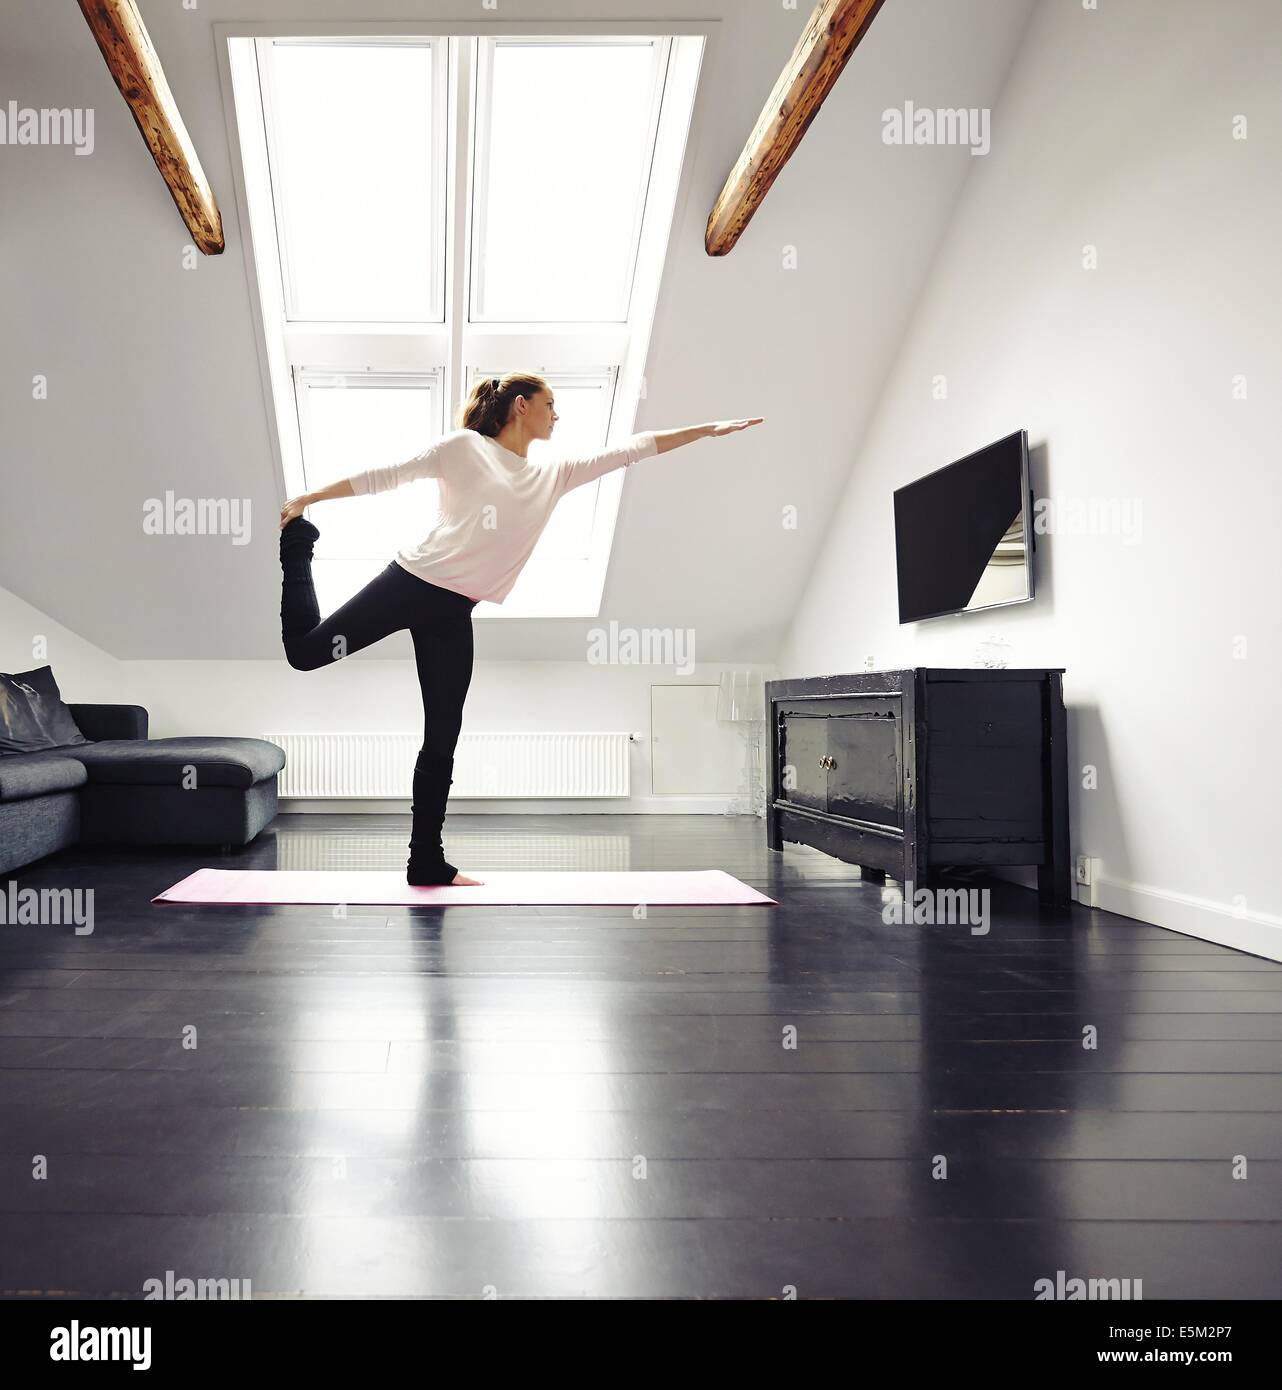 Beautiful woman practicing yoga exercises in living room. Fit female standing on one leg exercising at home. - Stock Image